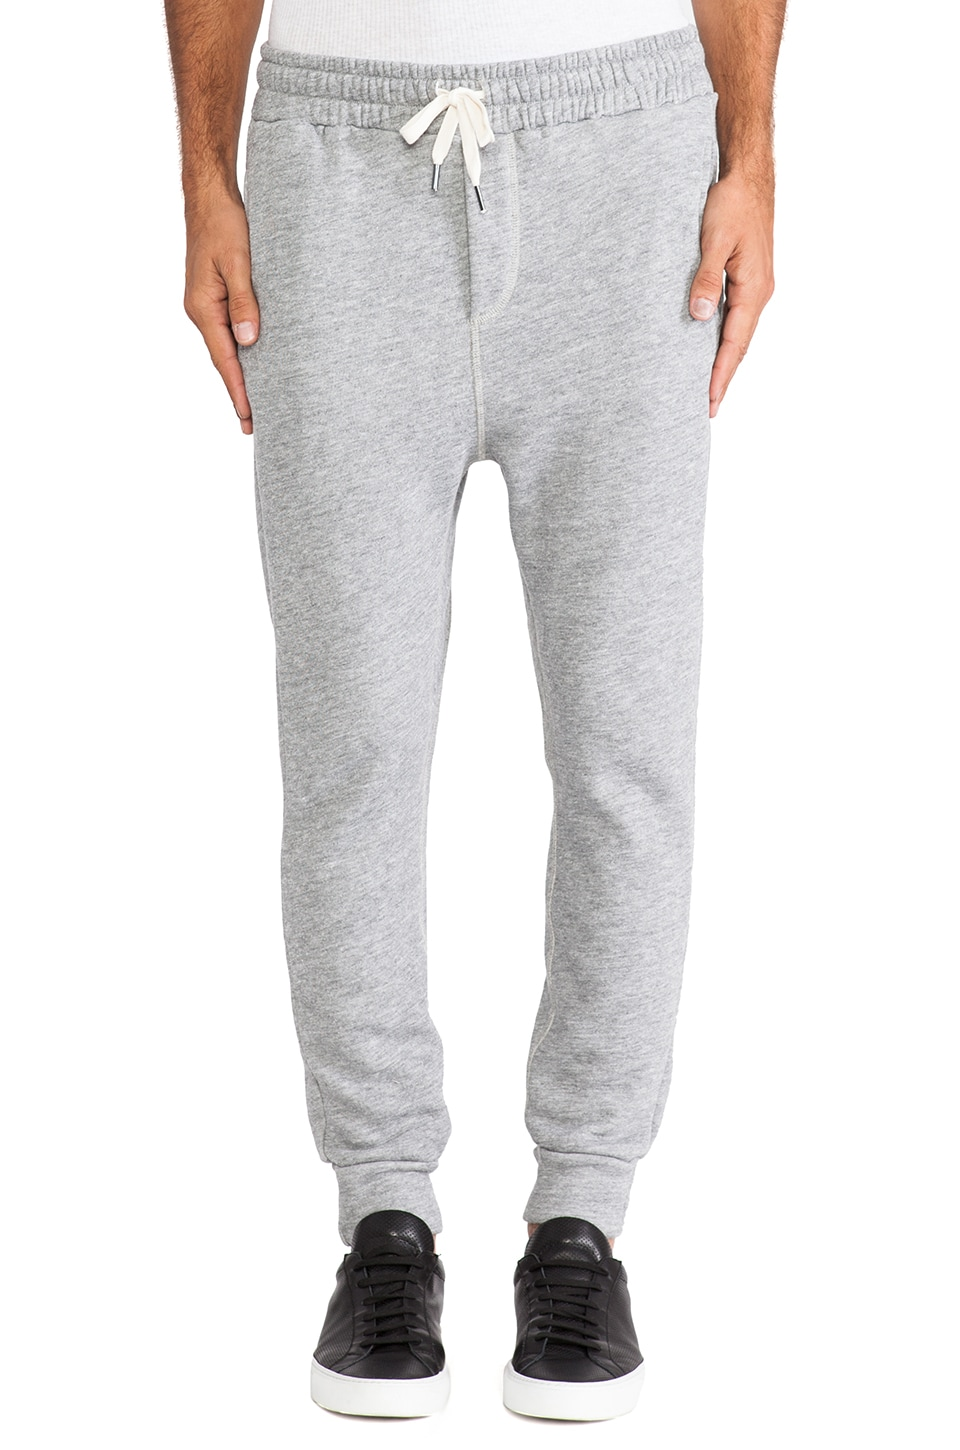 NSF Colby Sweatpant in Heather Grey